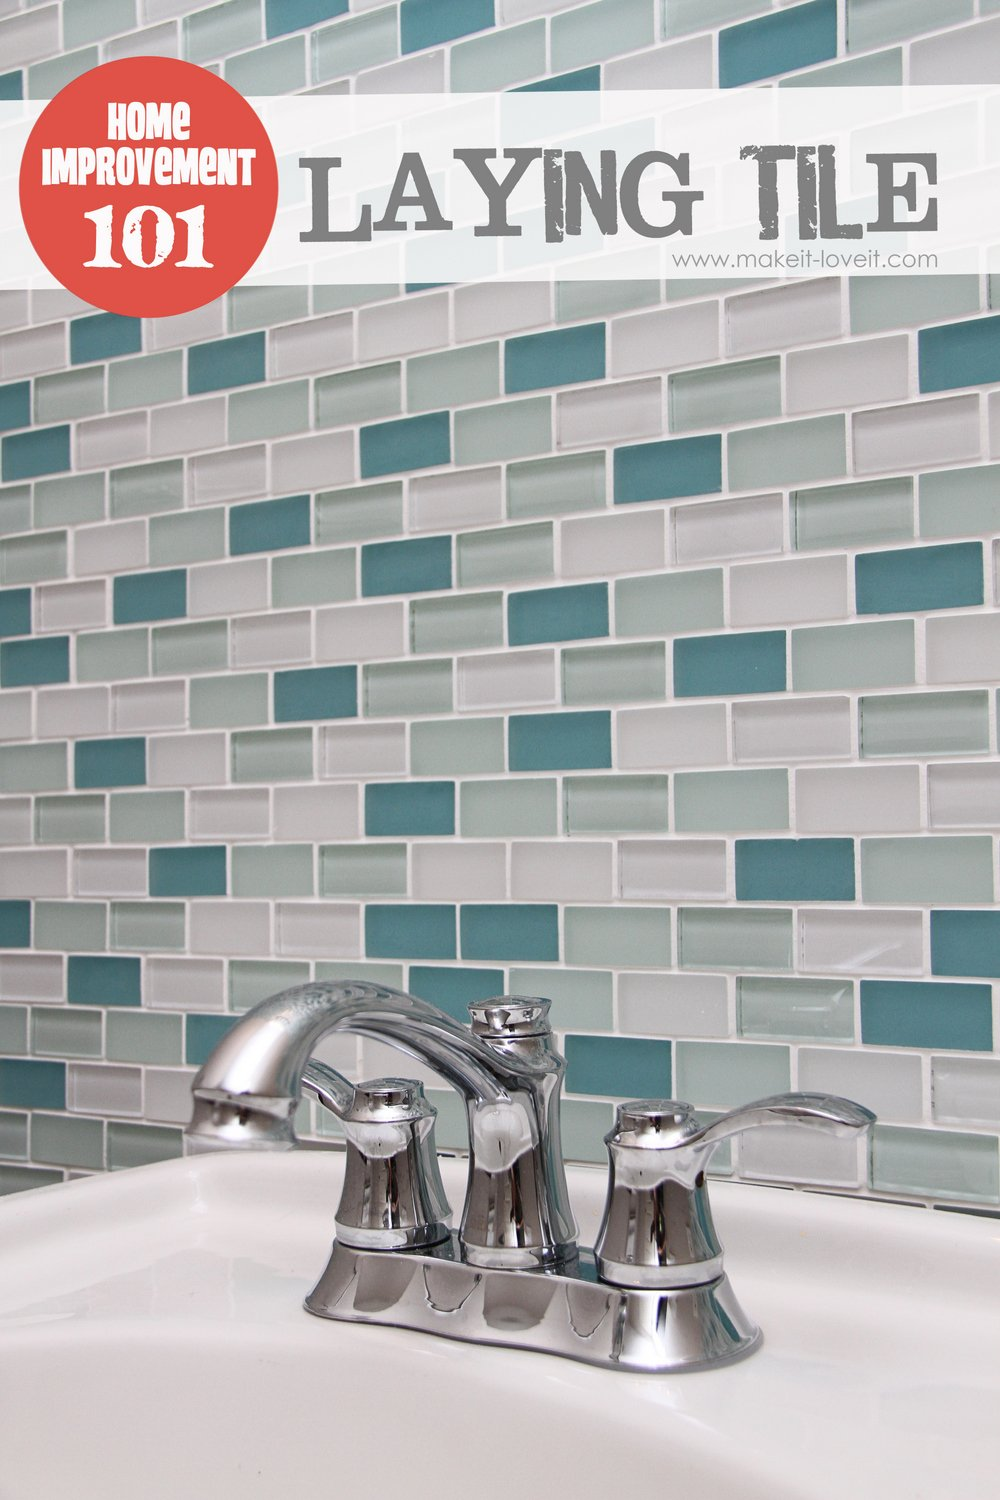 Home Improvement: Laying Tile (on a fireplace, walls, or backsplash ...